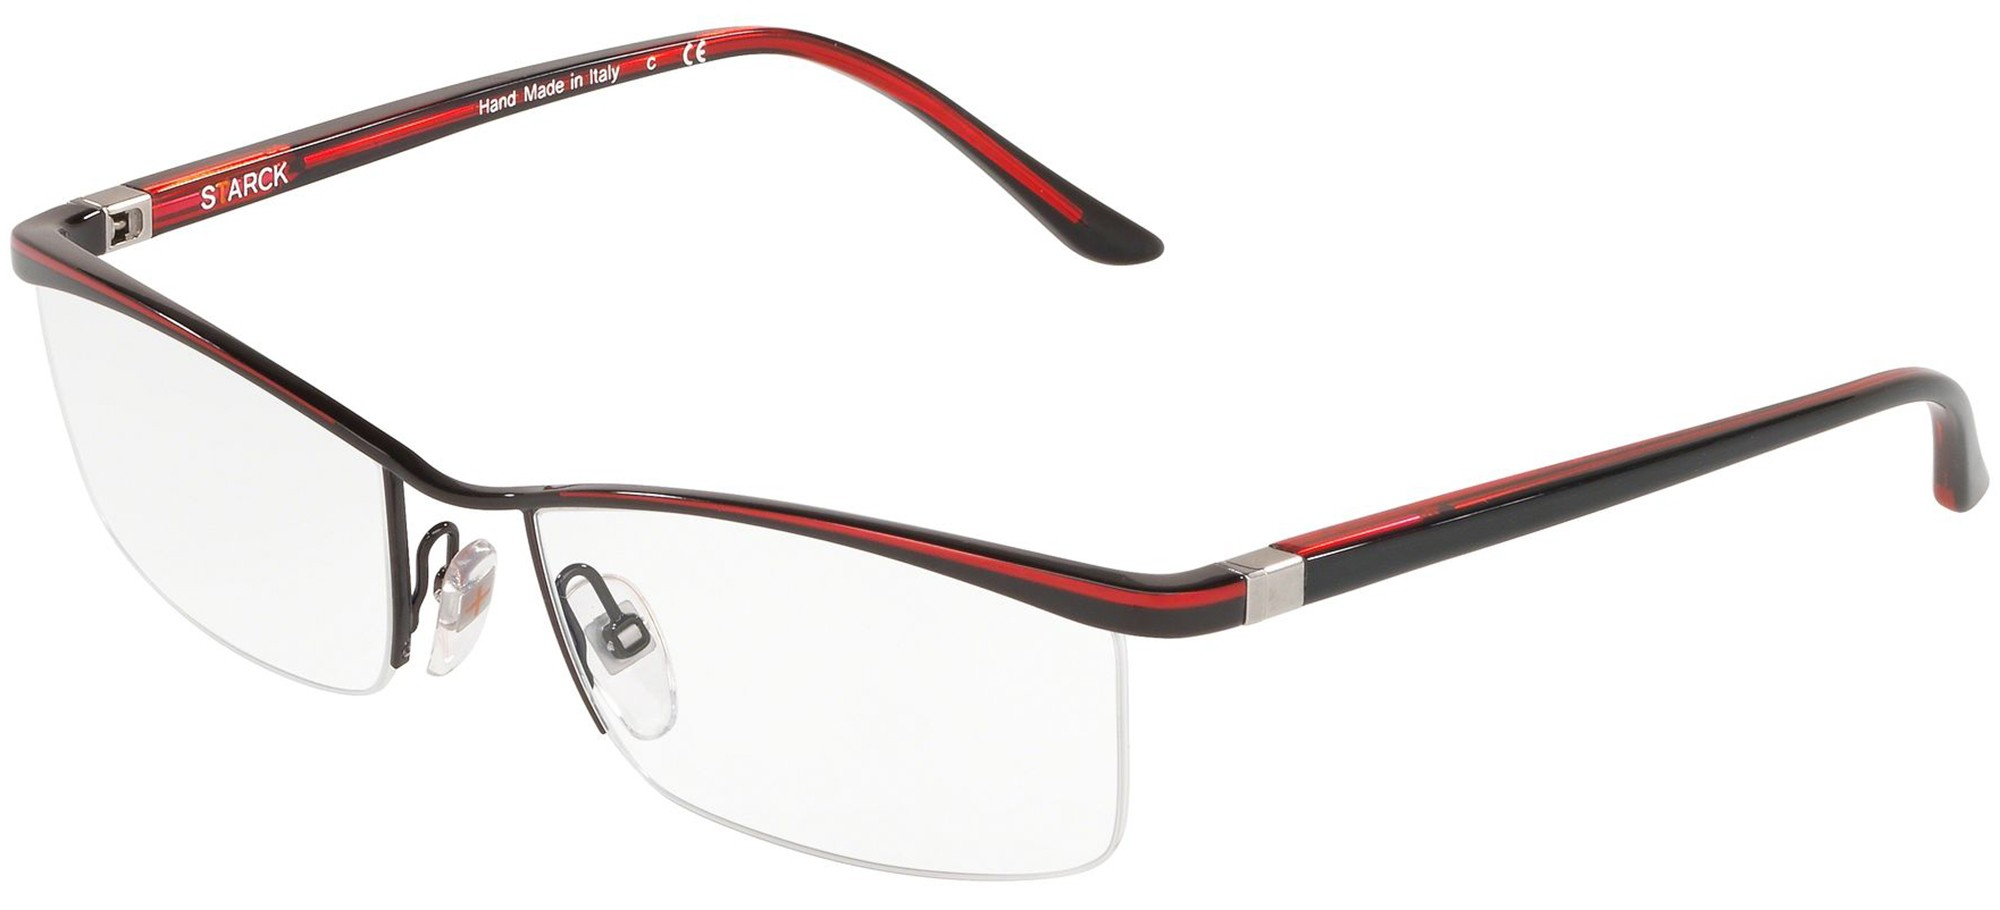 Starck Eyes eyeglasses 0SH9901